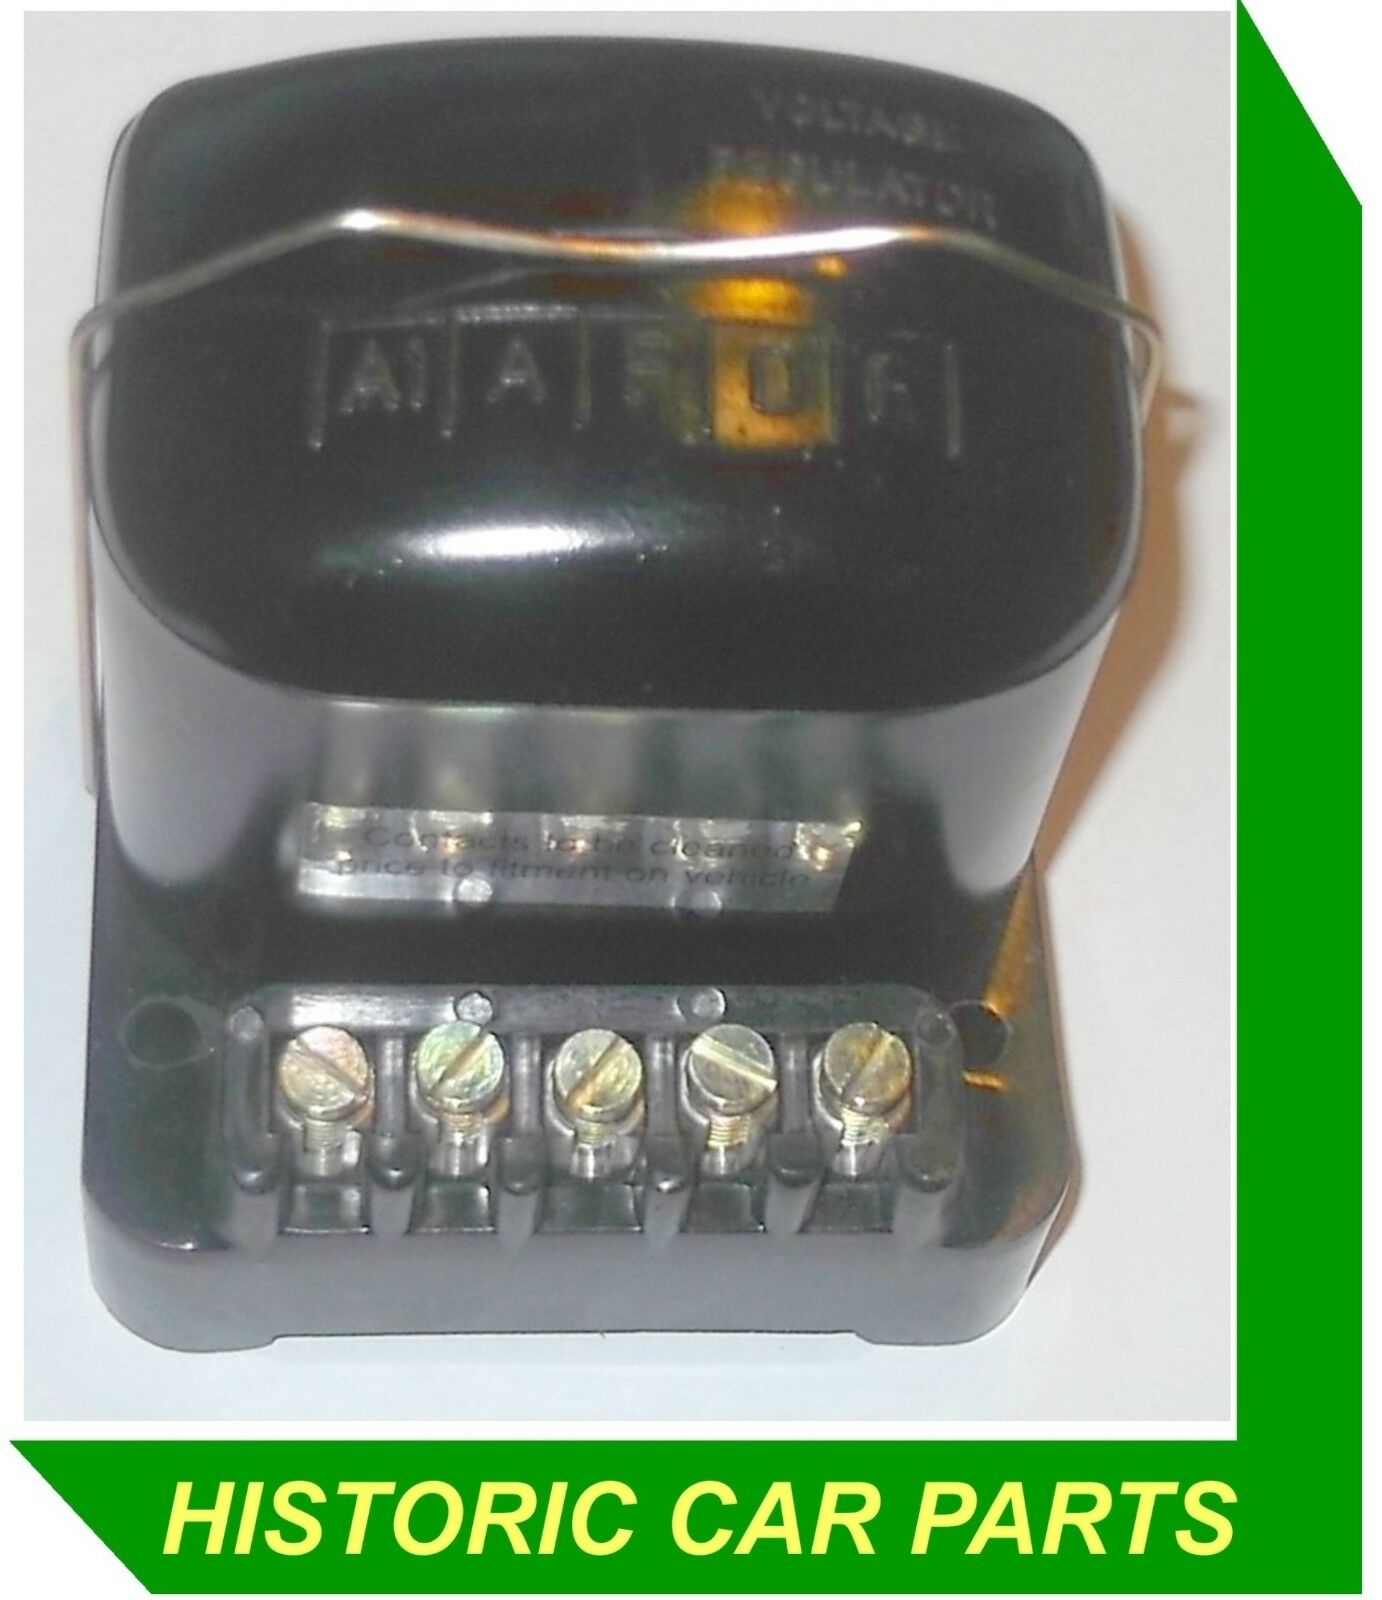 Austin A40 Somerset 1953 54 Voltage Regulator Screw Terms Replace 9 Volt 2 Amp Power Supply By 78s09 1 Of 1only 5 Available